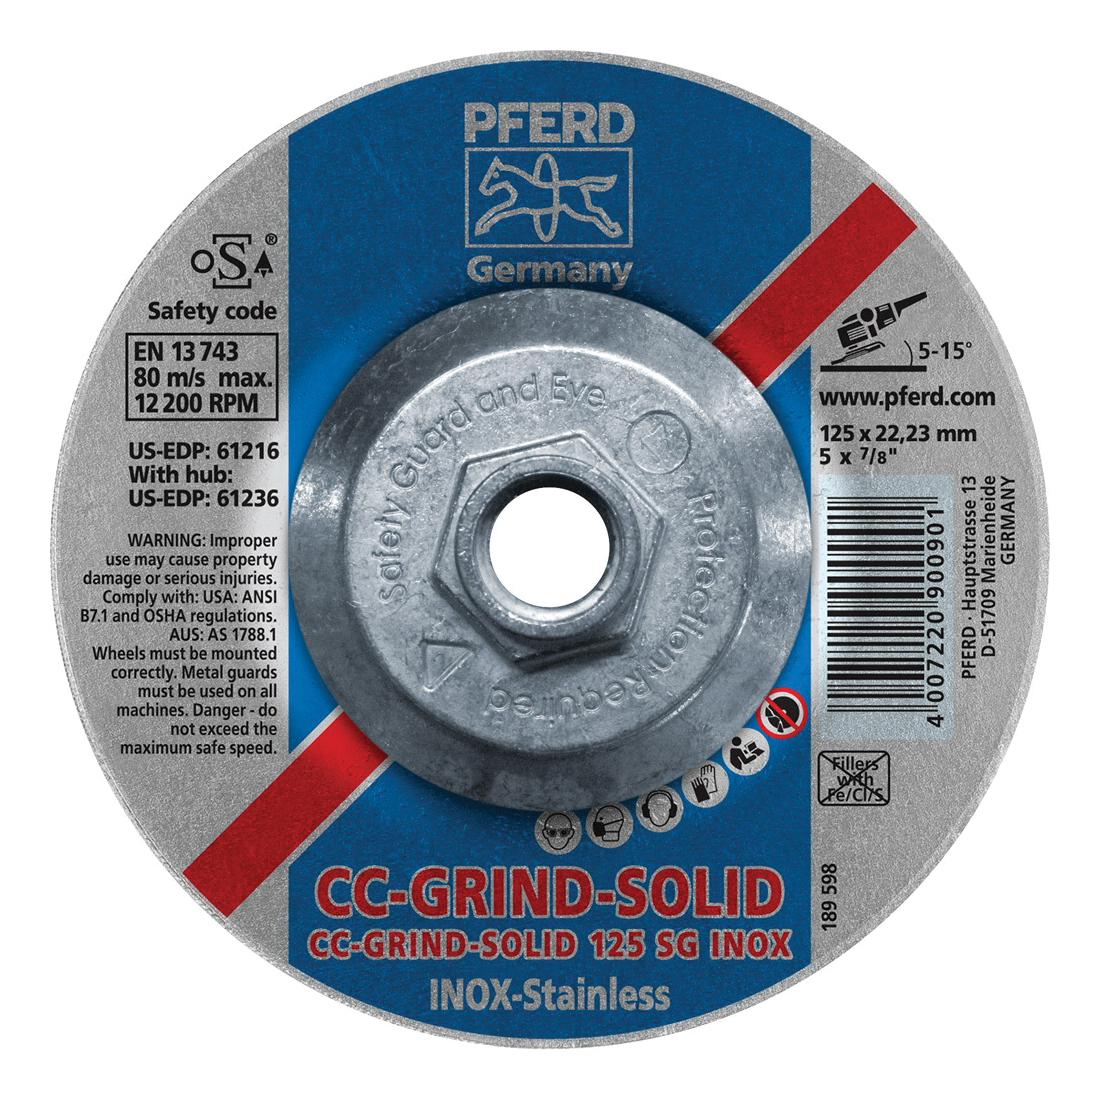 PFERD CC-GRIND®-SOLID Performance Line SG 61236 Threaded Coated Abrasive Disc, 5 in Dia